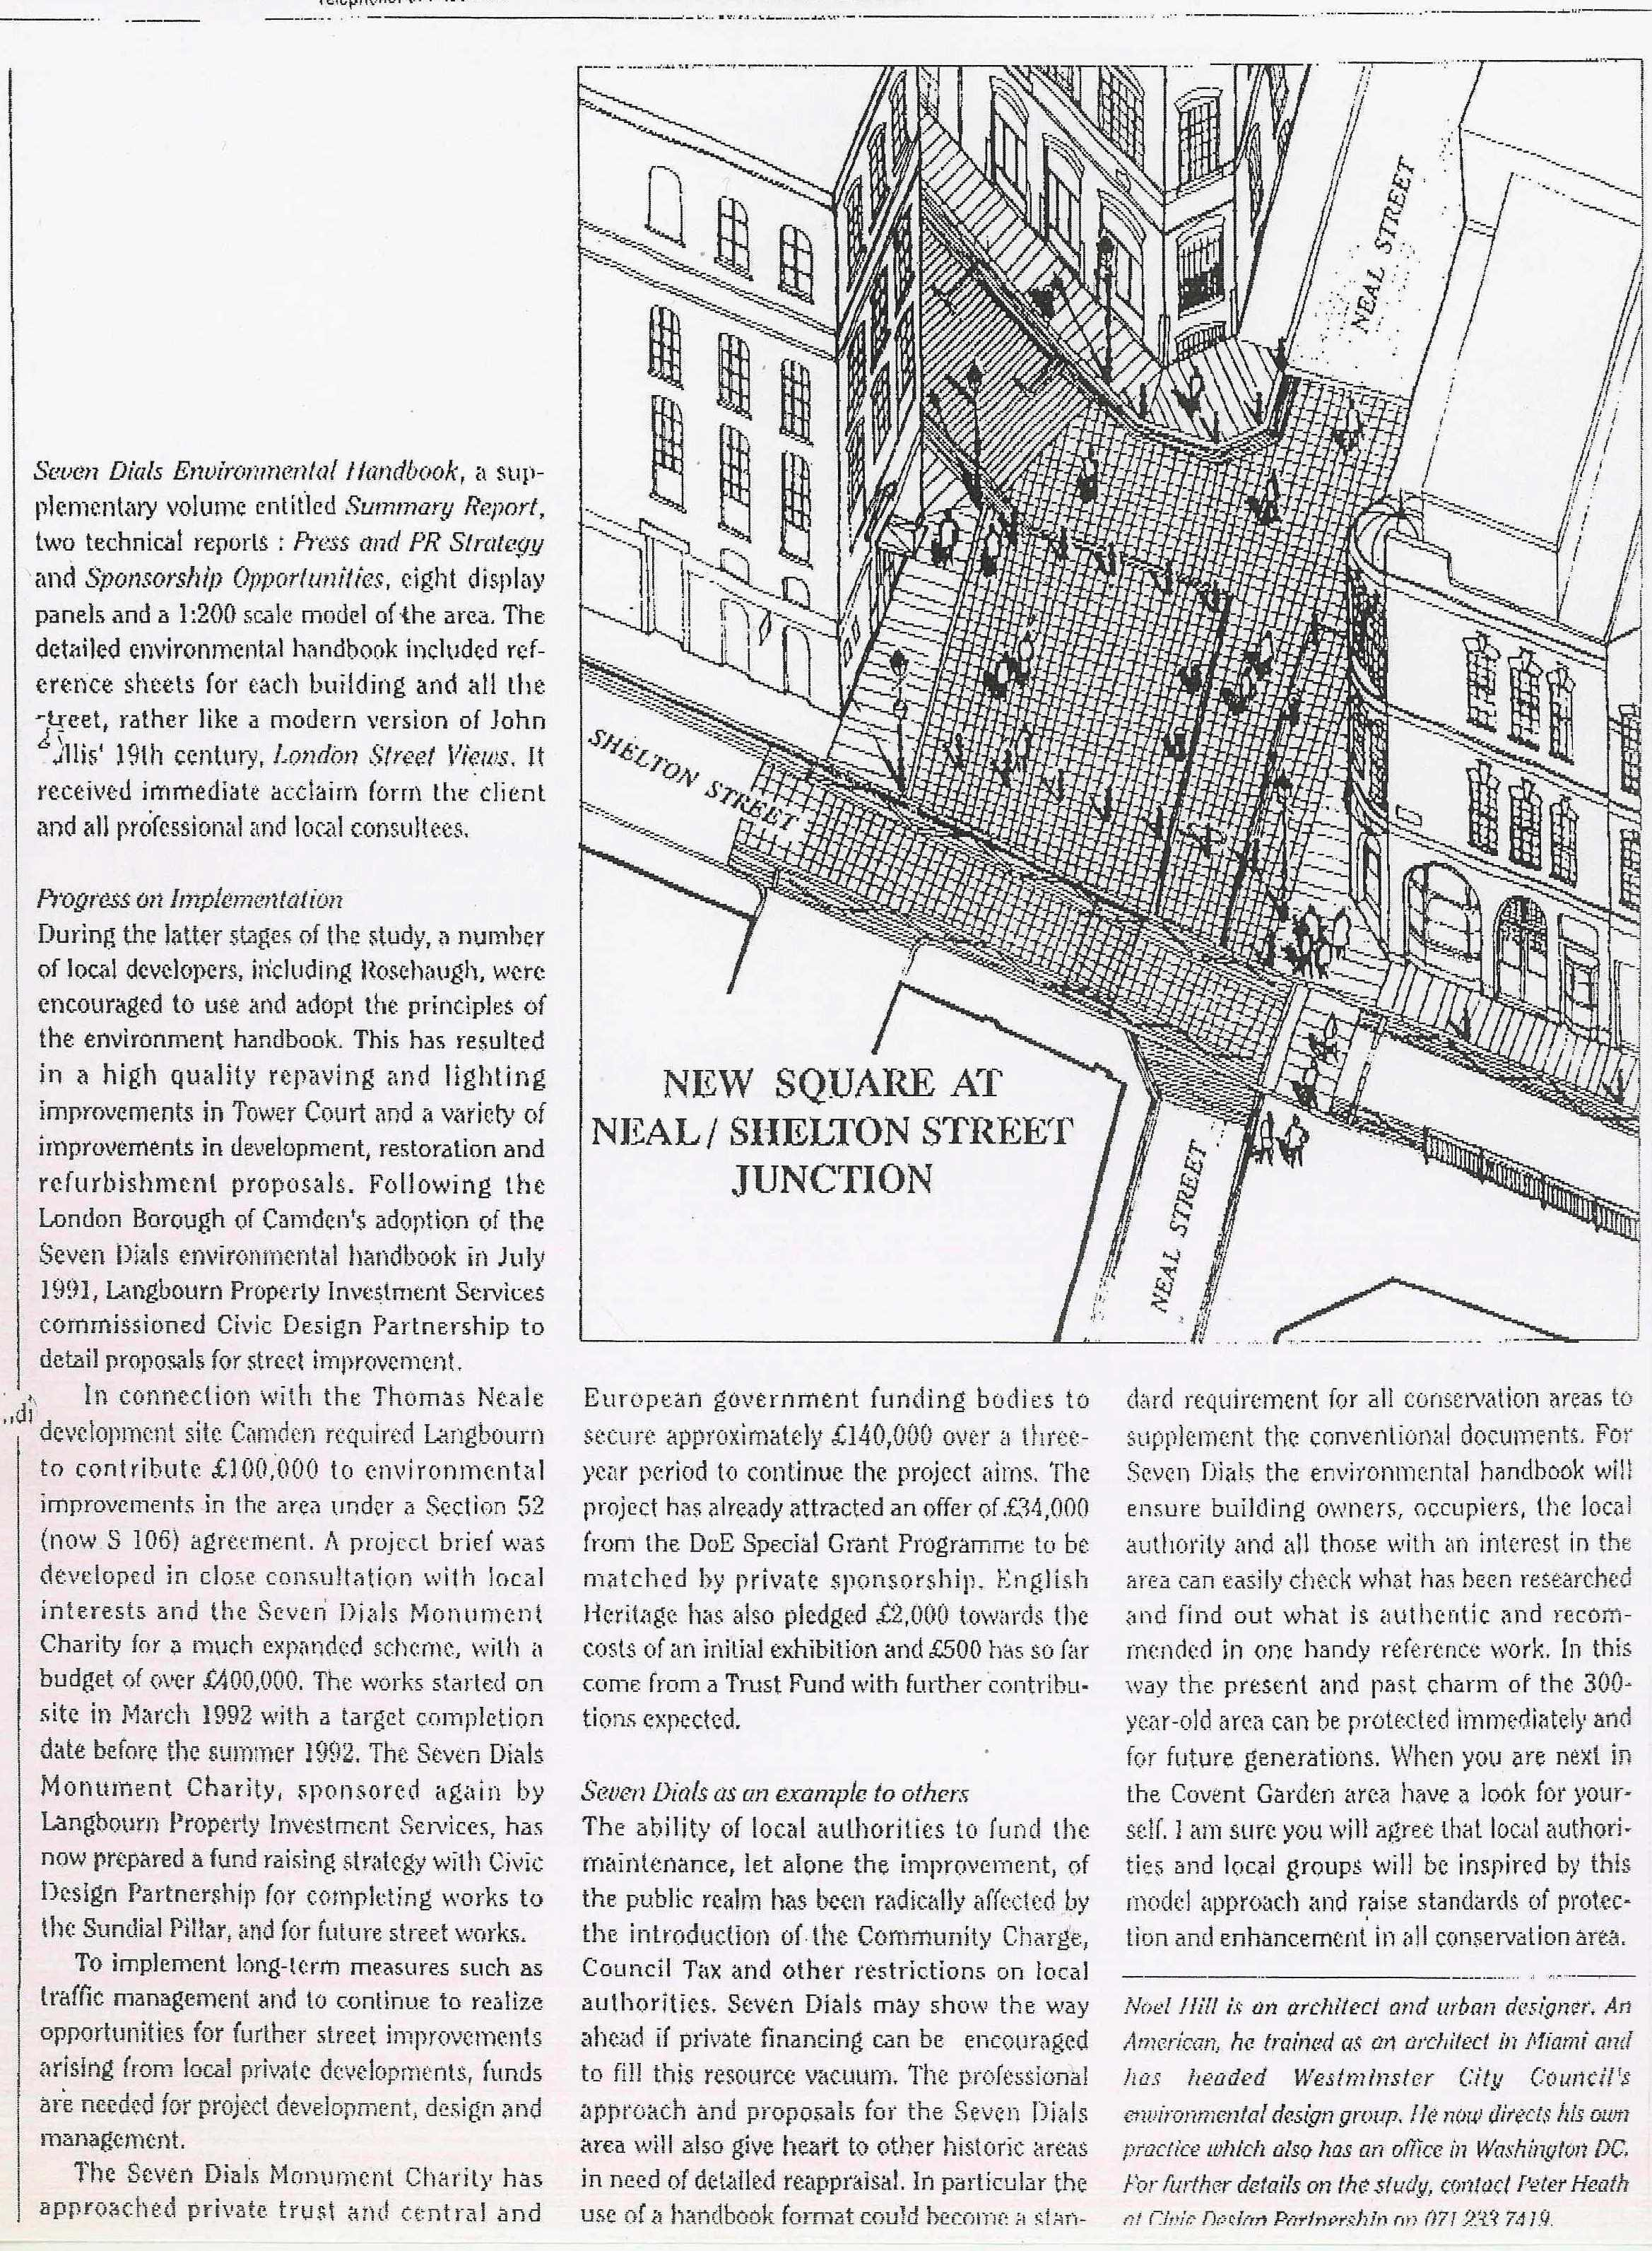 27 May 1992 – Urban Design: Pointing the way for urban design.